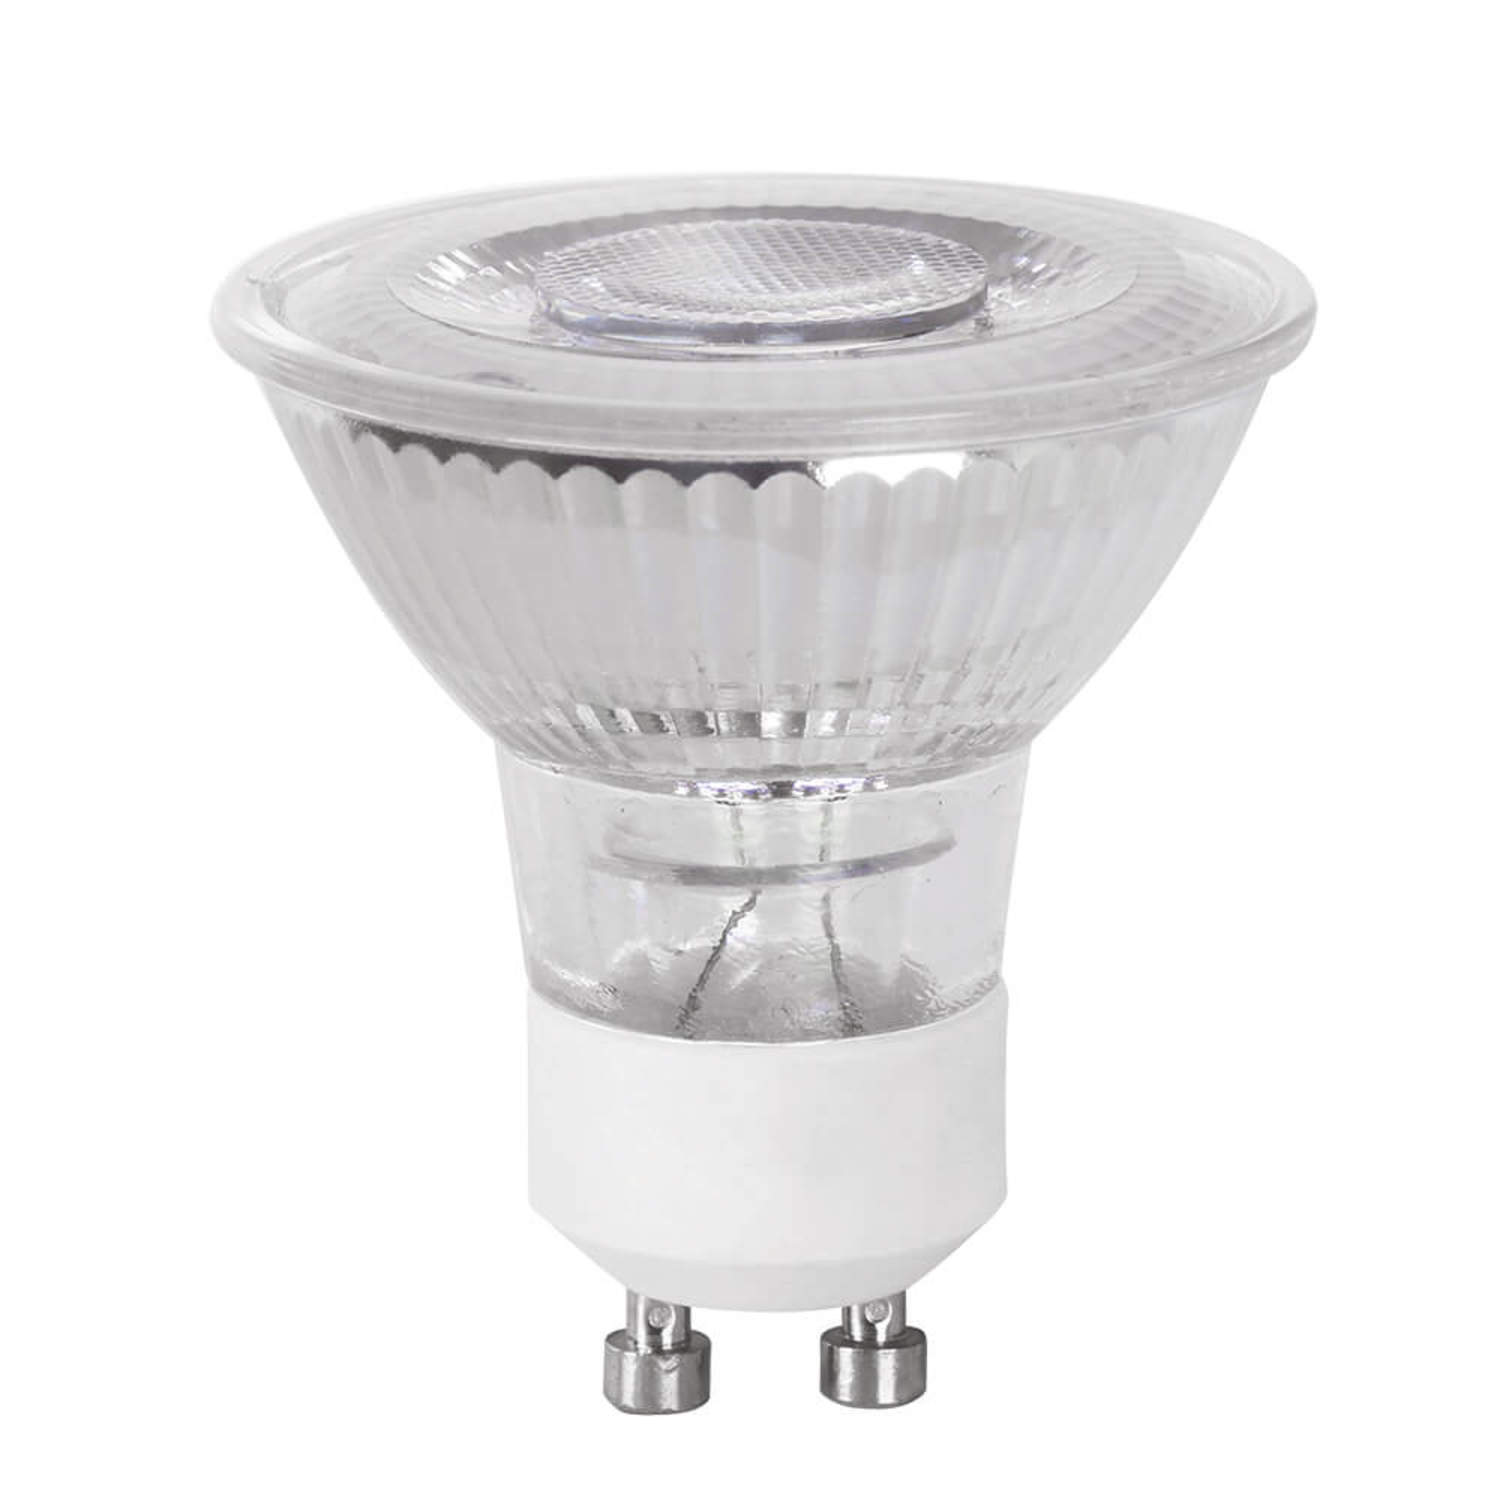 Mr16 Gu10 Led Bulbs Dimmable 7w 50w Equivalent 3000k: Feit Electric BPMR16/GU10/500LEDG2 500-Lumen 3000k